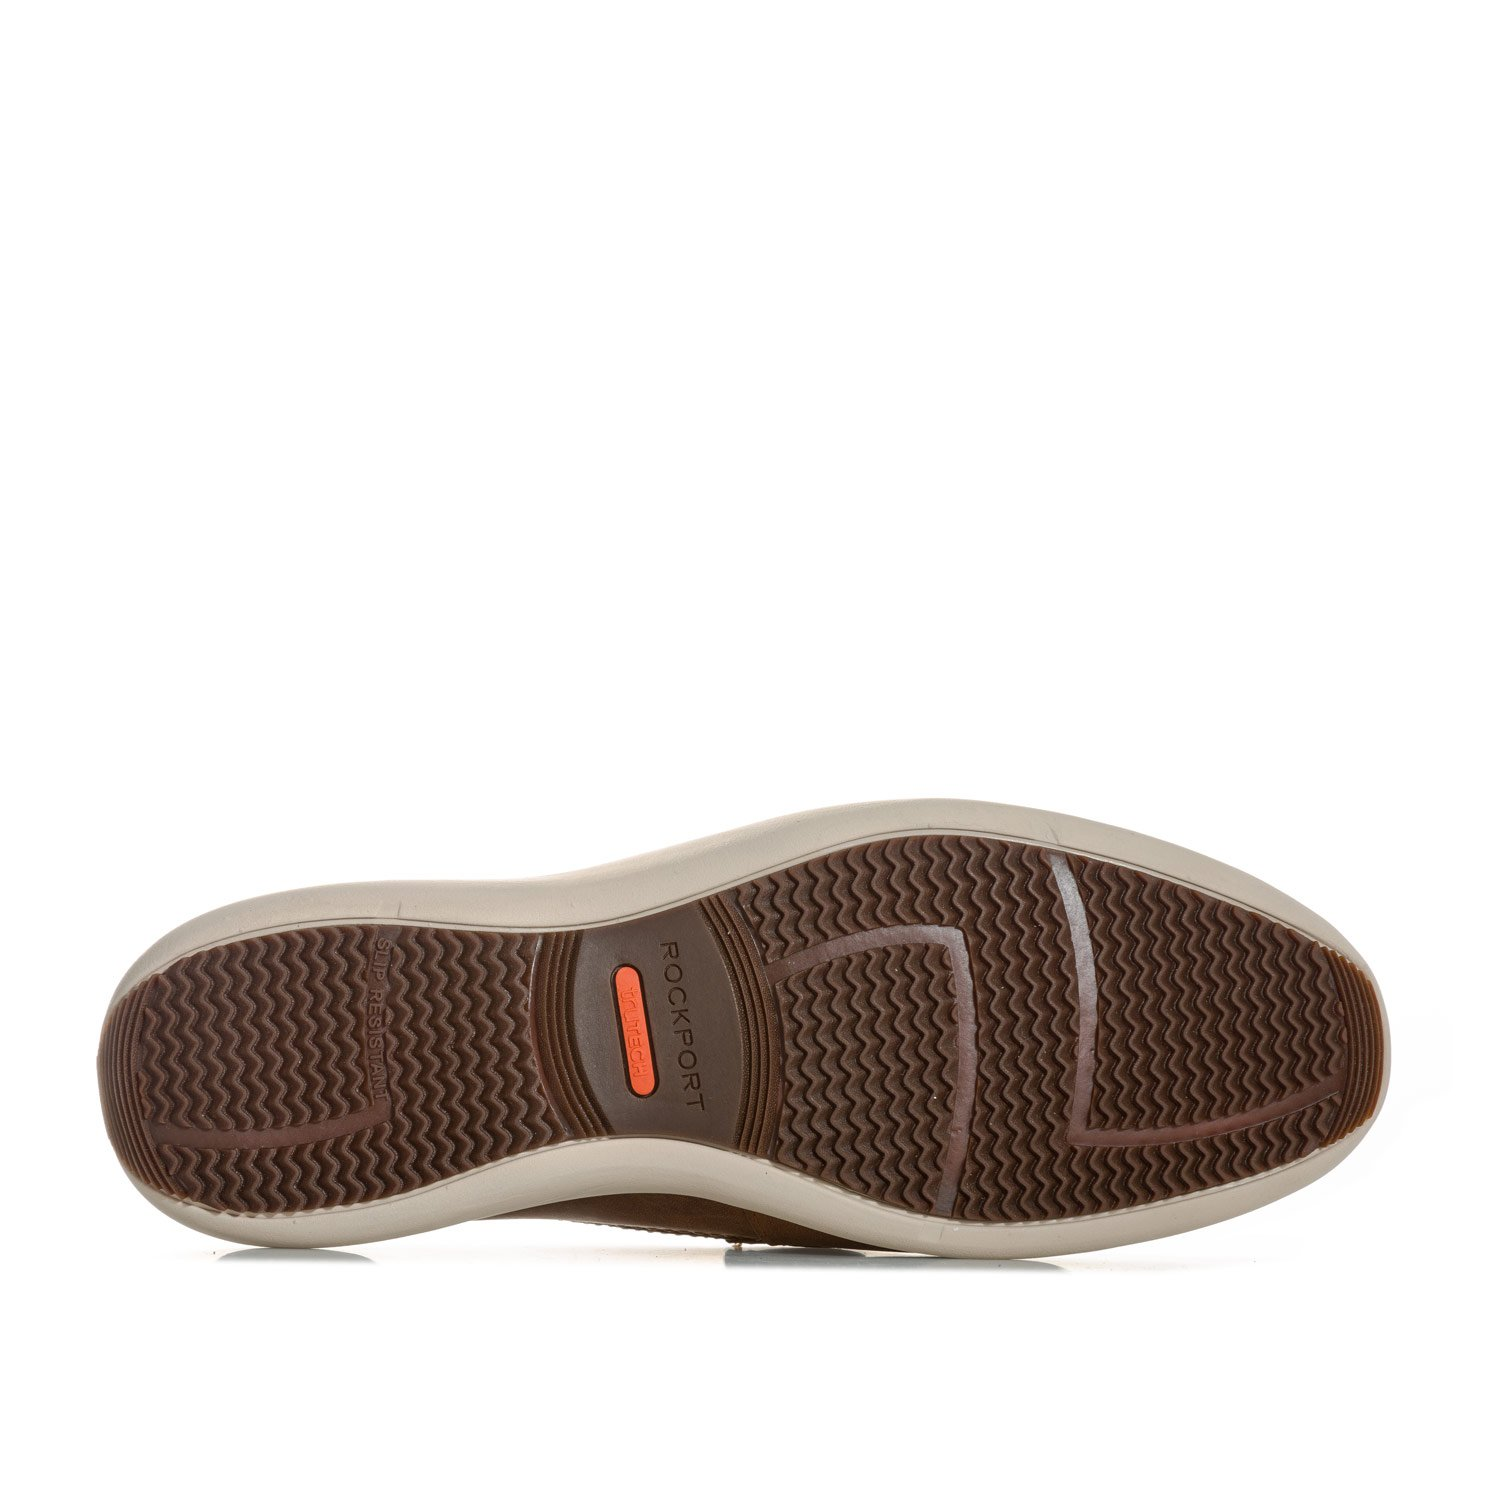 Amazon.com | Rockport Mens Aiden Penny Loafers US10.5 Brown | Loafers & Slip-Ons